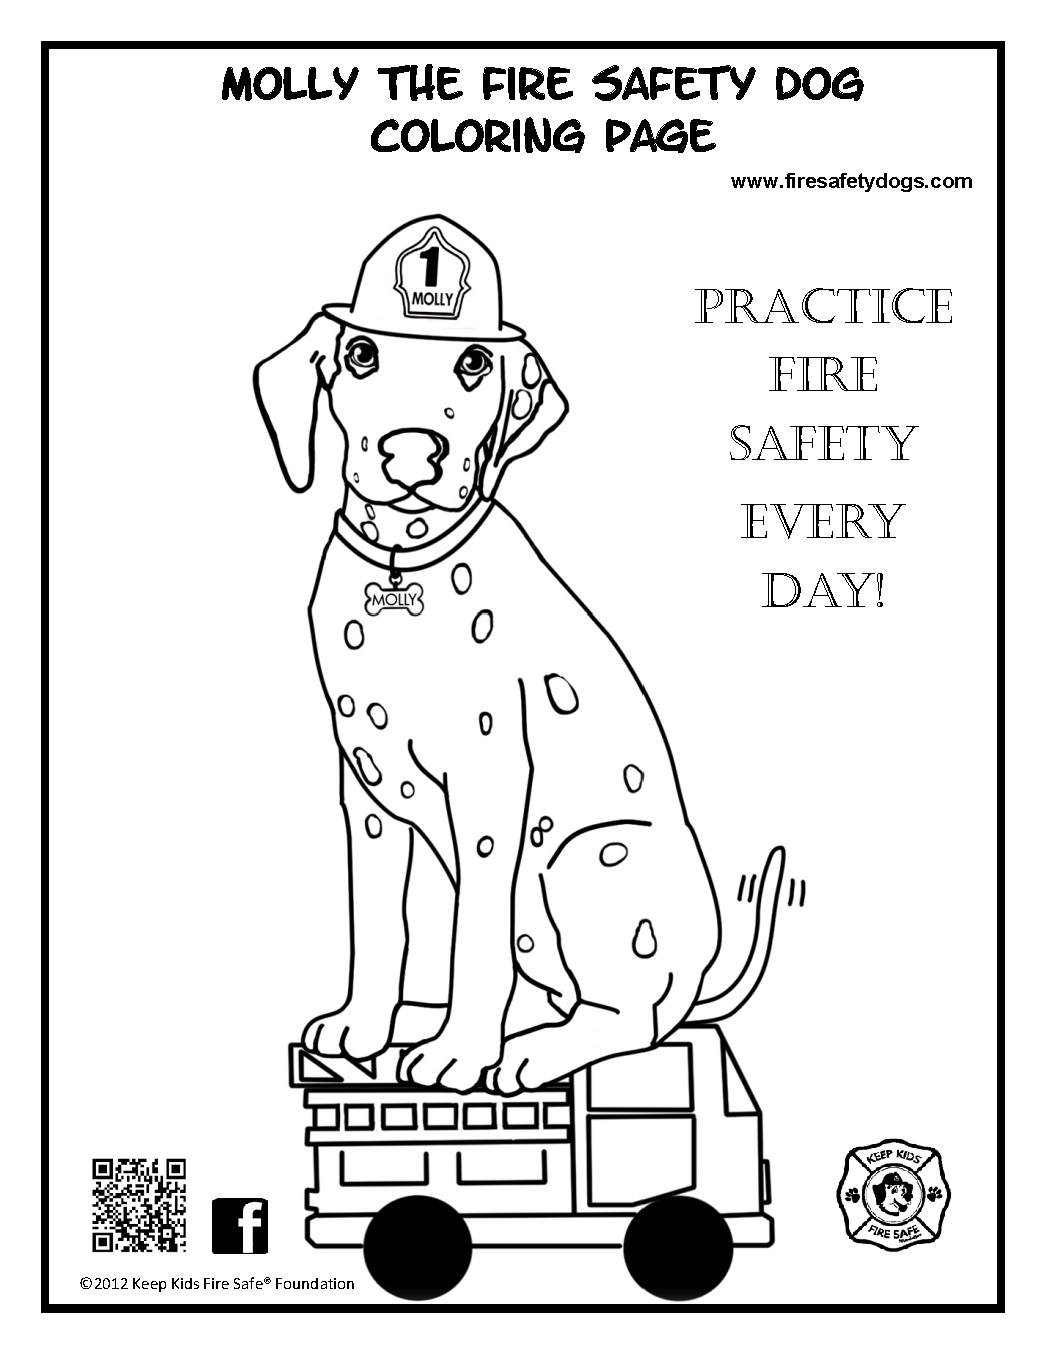 Coloring Pages Fire Dog Coloring Page 1000 images about fire safety preschool on pinterest free printable maze and coloring pages